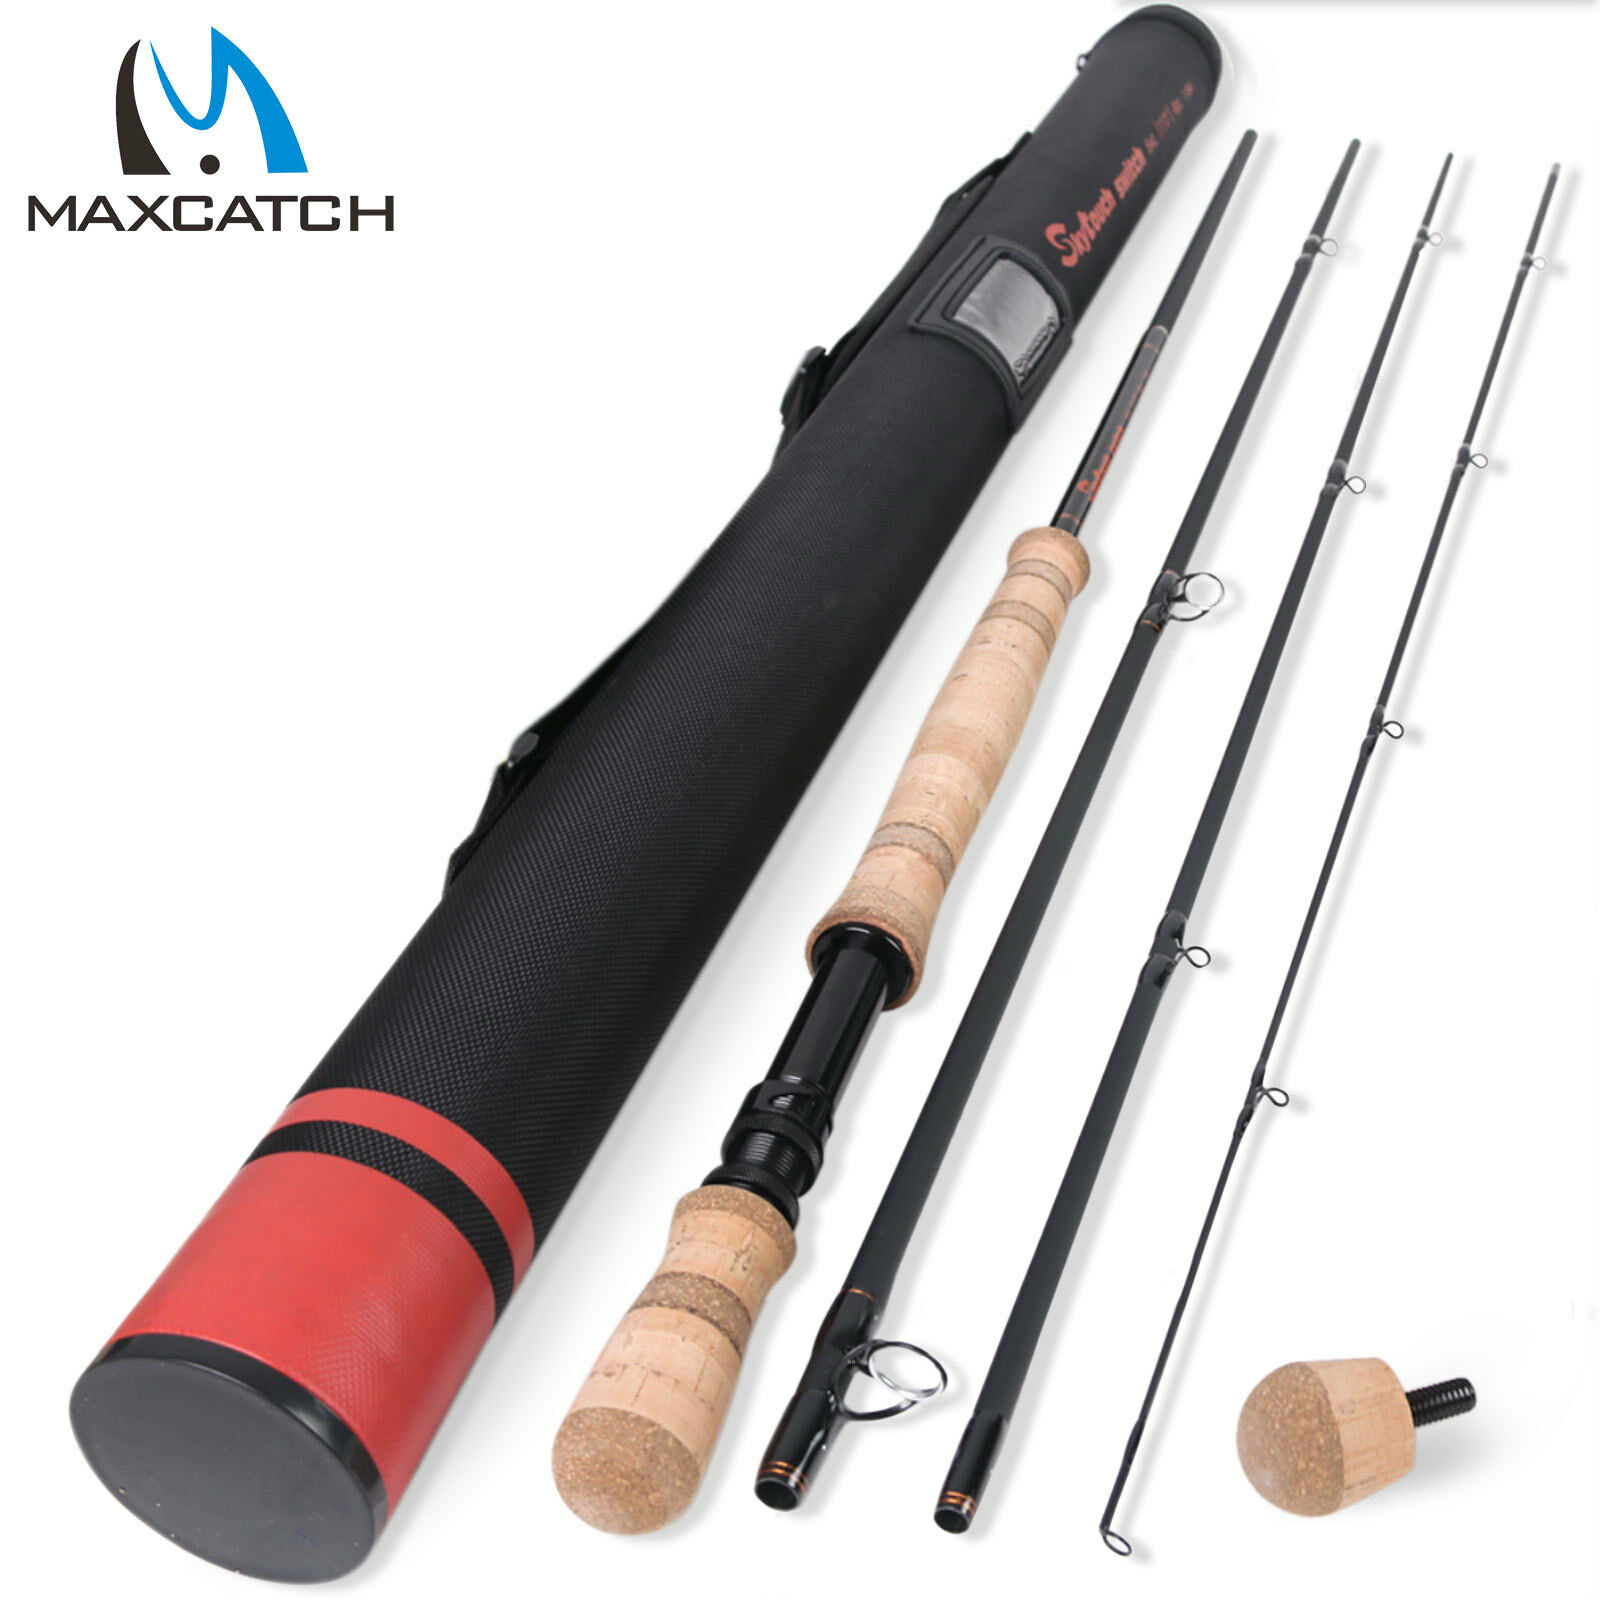 Maxcatch Two-handed Switch &  Spey Fly Fishing Rods Fast Action IM10 Carbon Blank  free delivery and returns